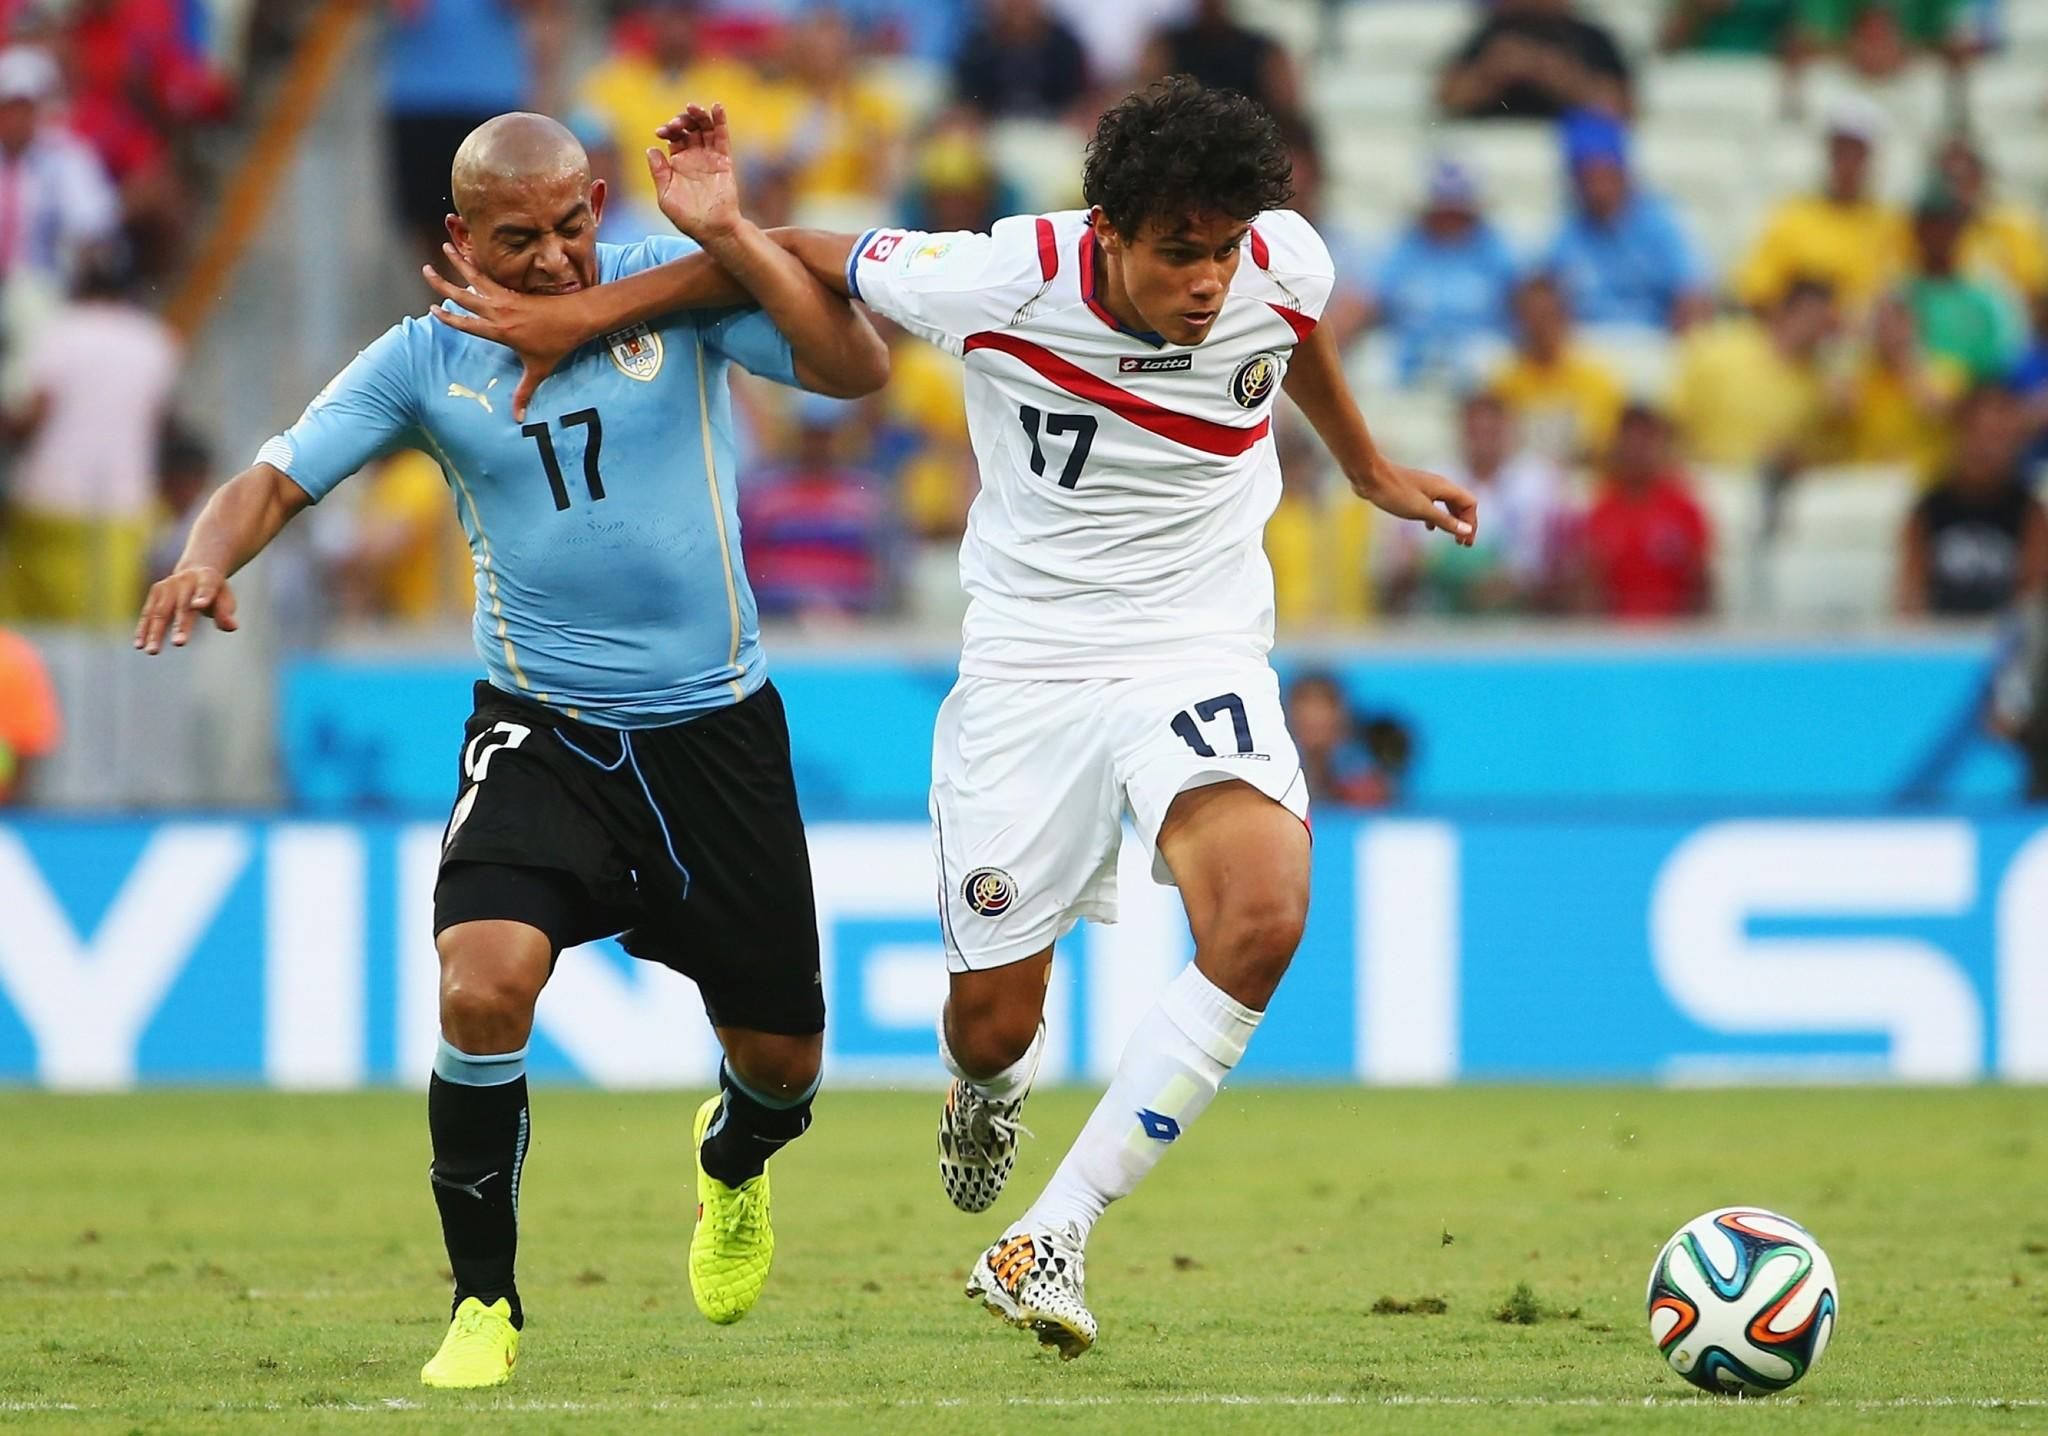 Yeltsin Tejeda of Costa Rica holds off a challenge by Egidio Arevalo Rios of Uruguay during the 2014 FIFA World Cup Brazil Group D match.